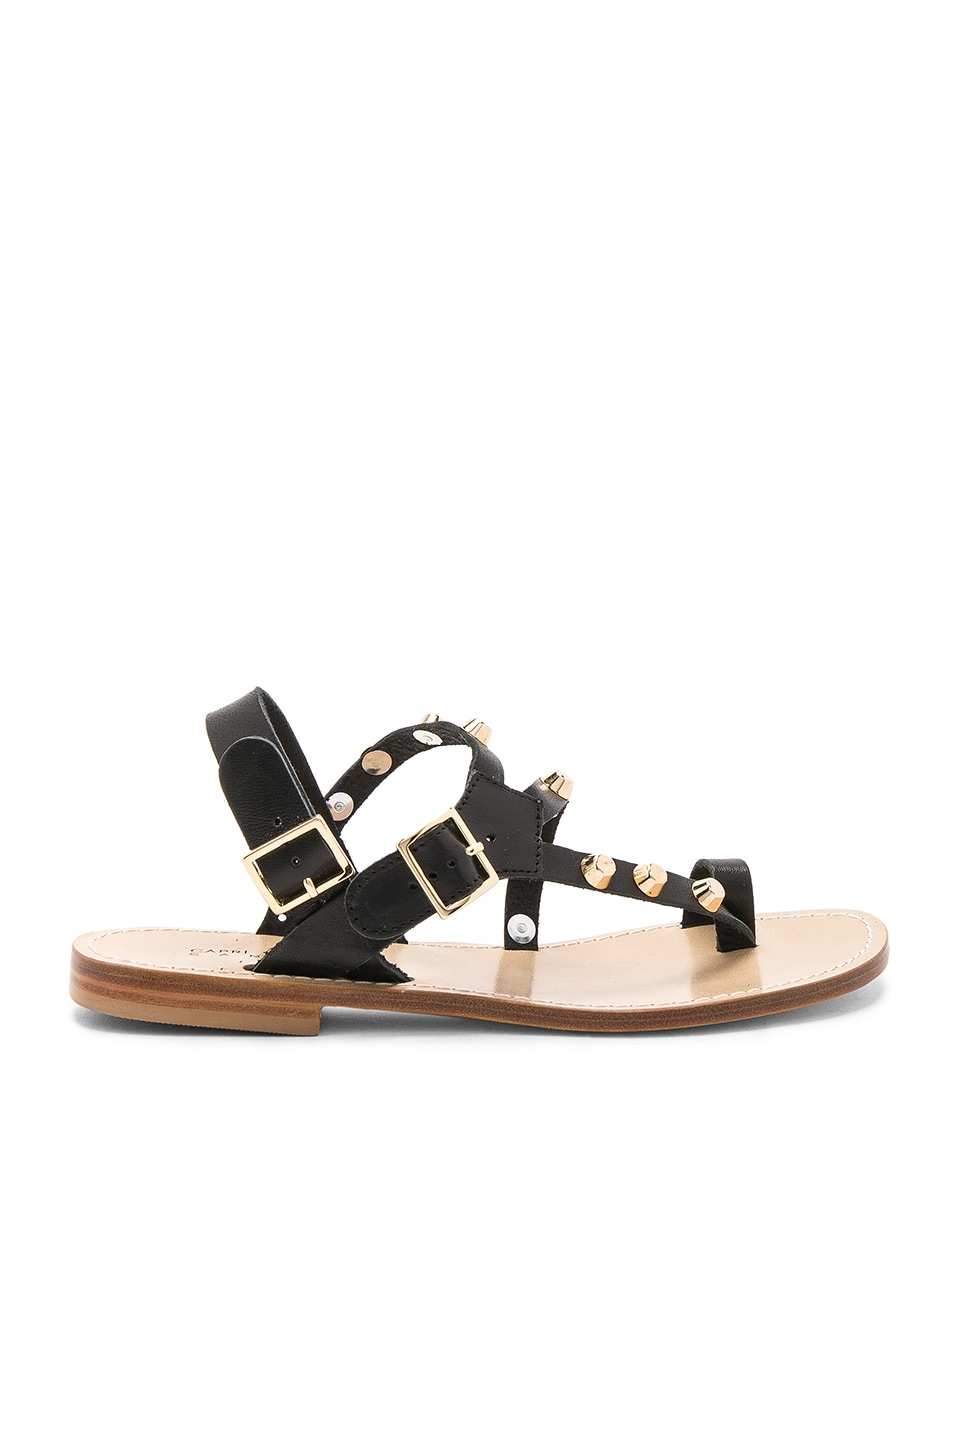 Shop Capri Positano Nisida Sandal shoes